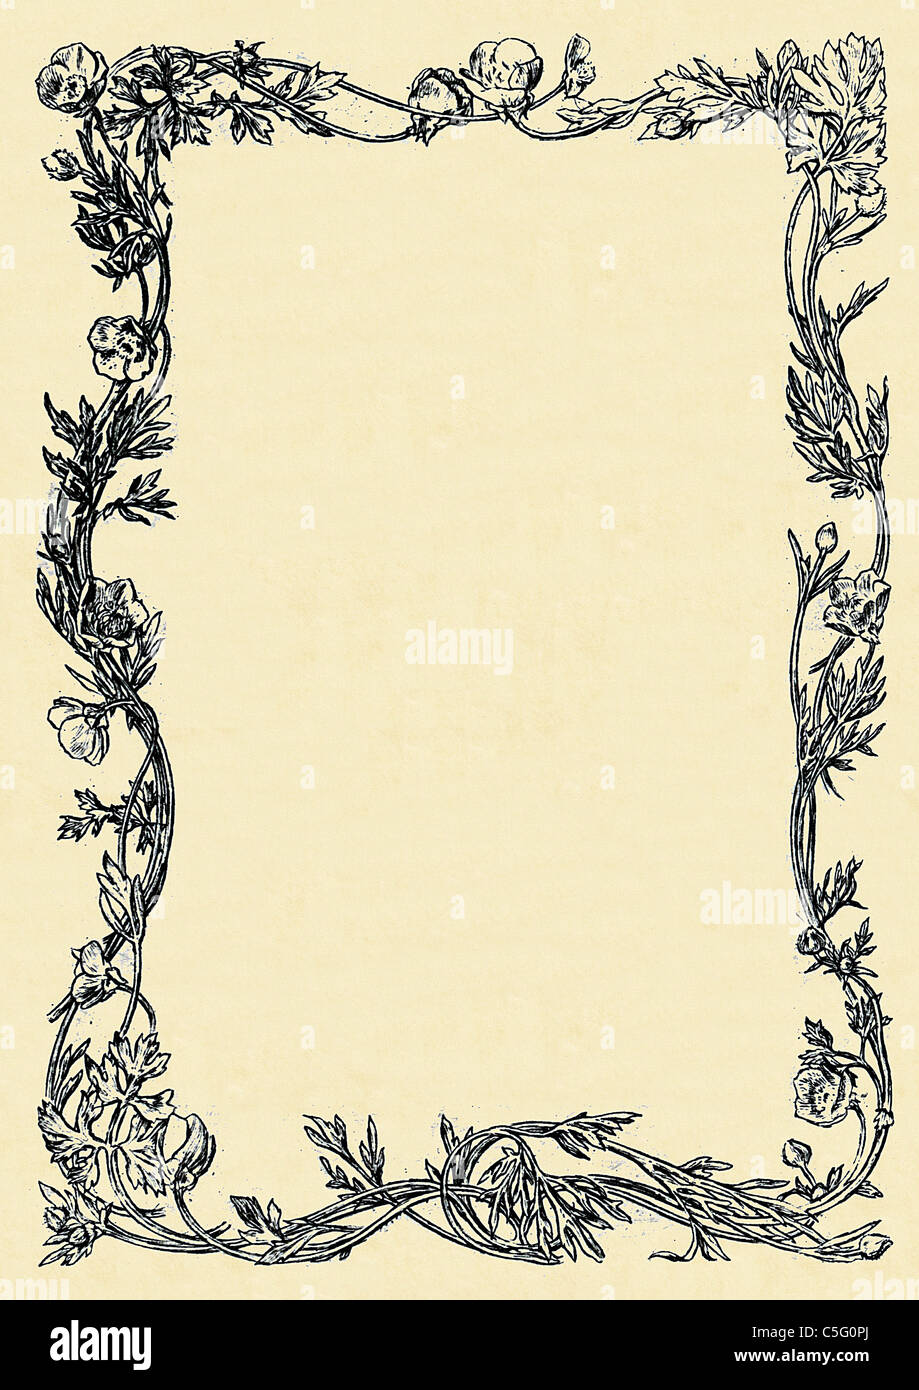 vintage decorative border design 5 from an antiquarian